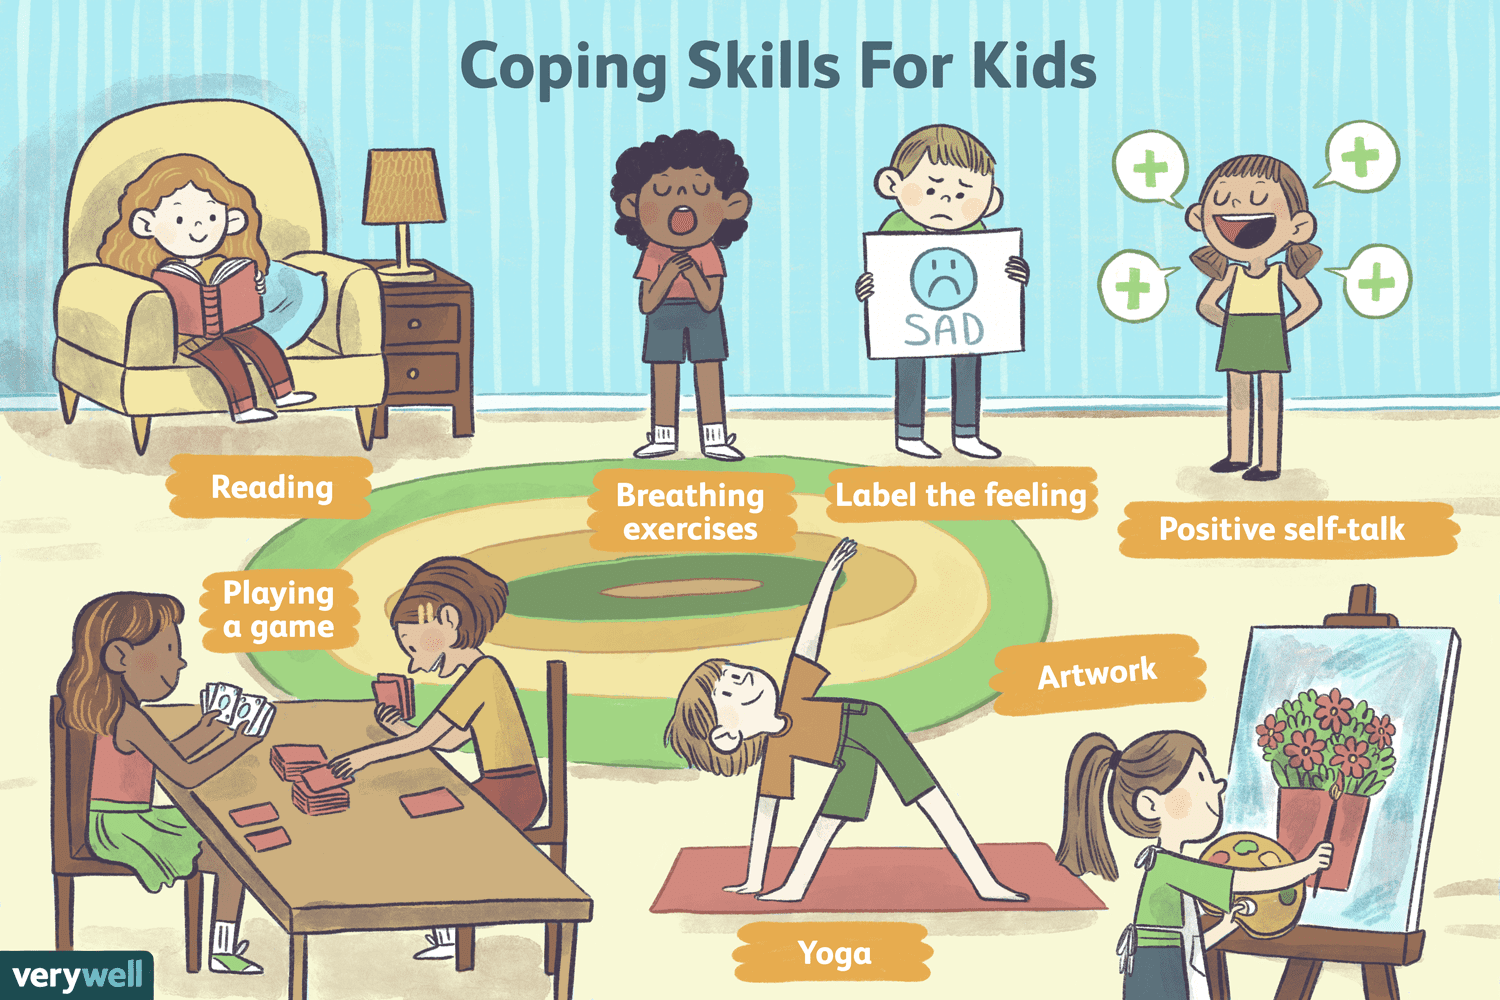 15 Coping Skills For Kids